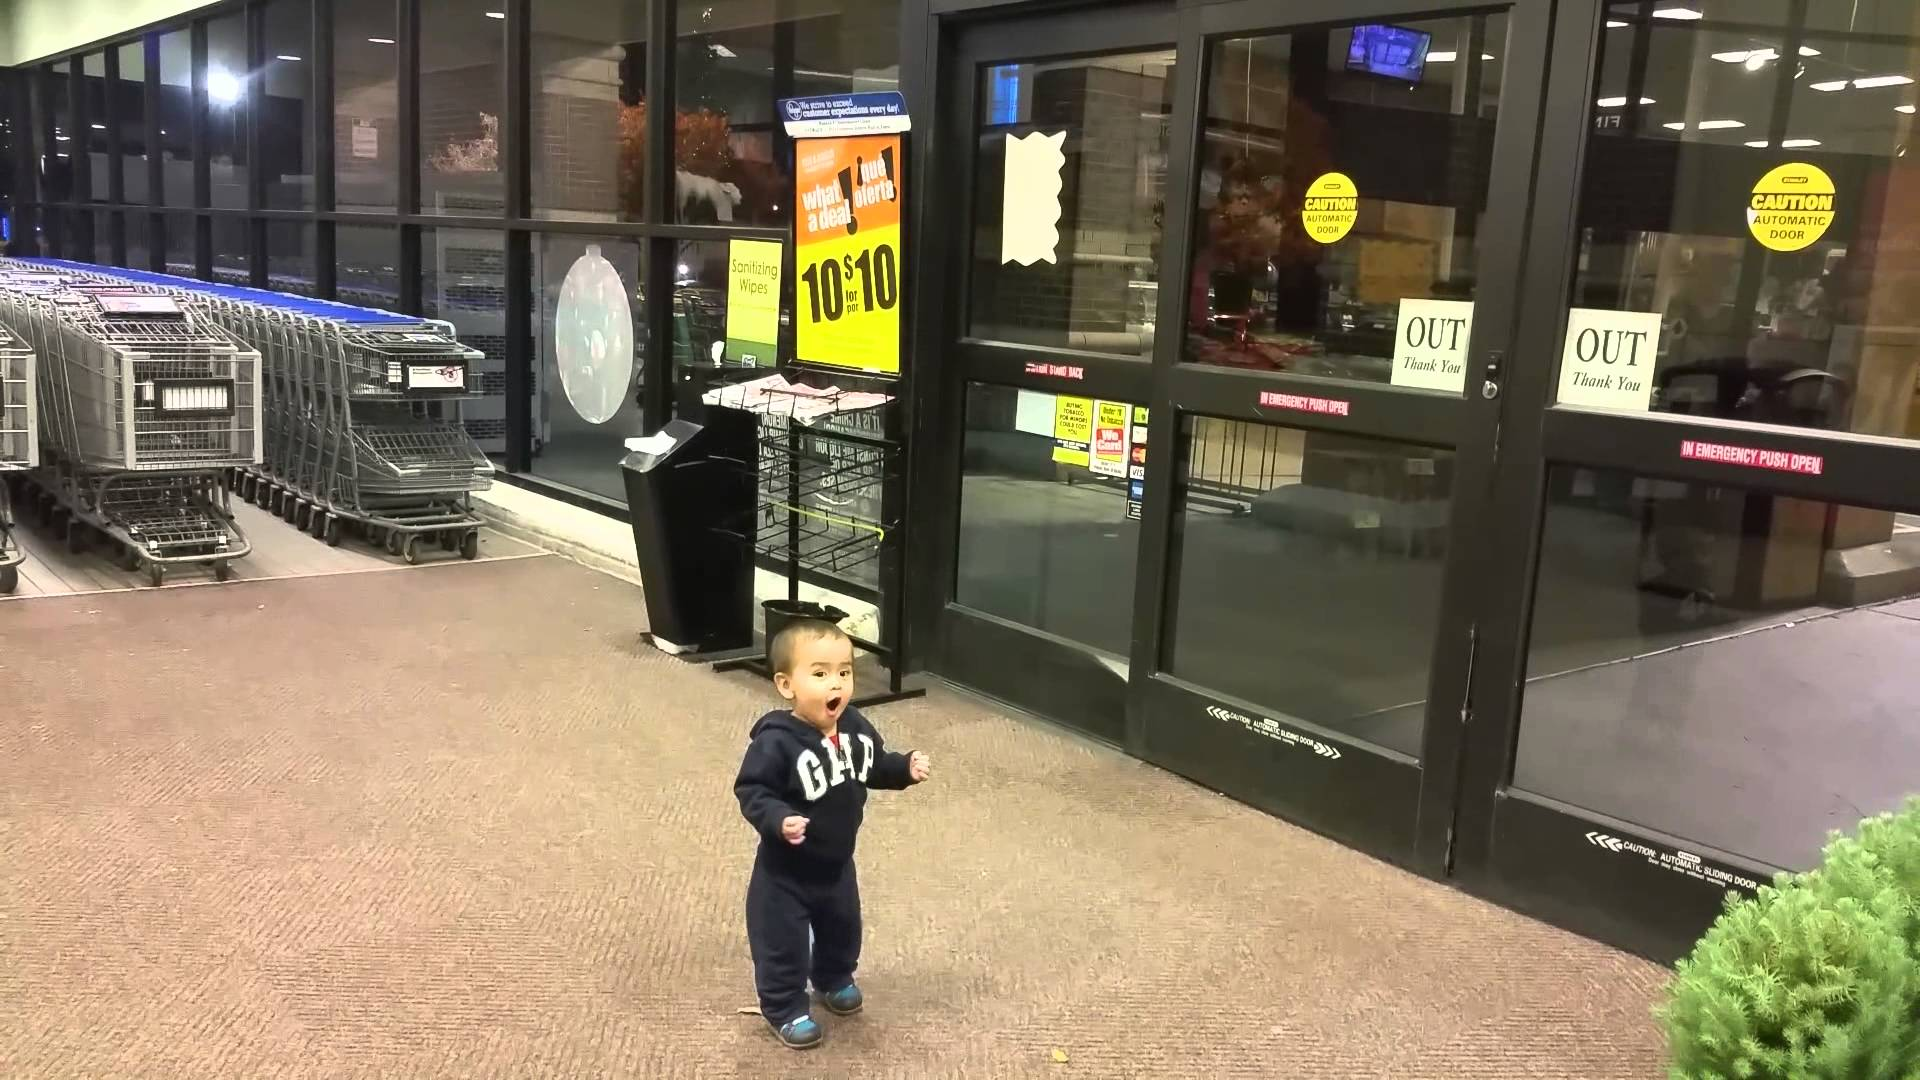 First time reaction to automatic doors